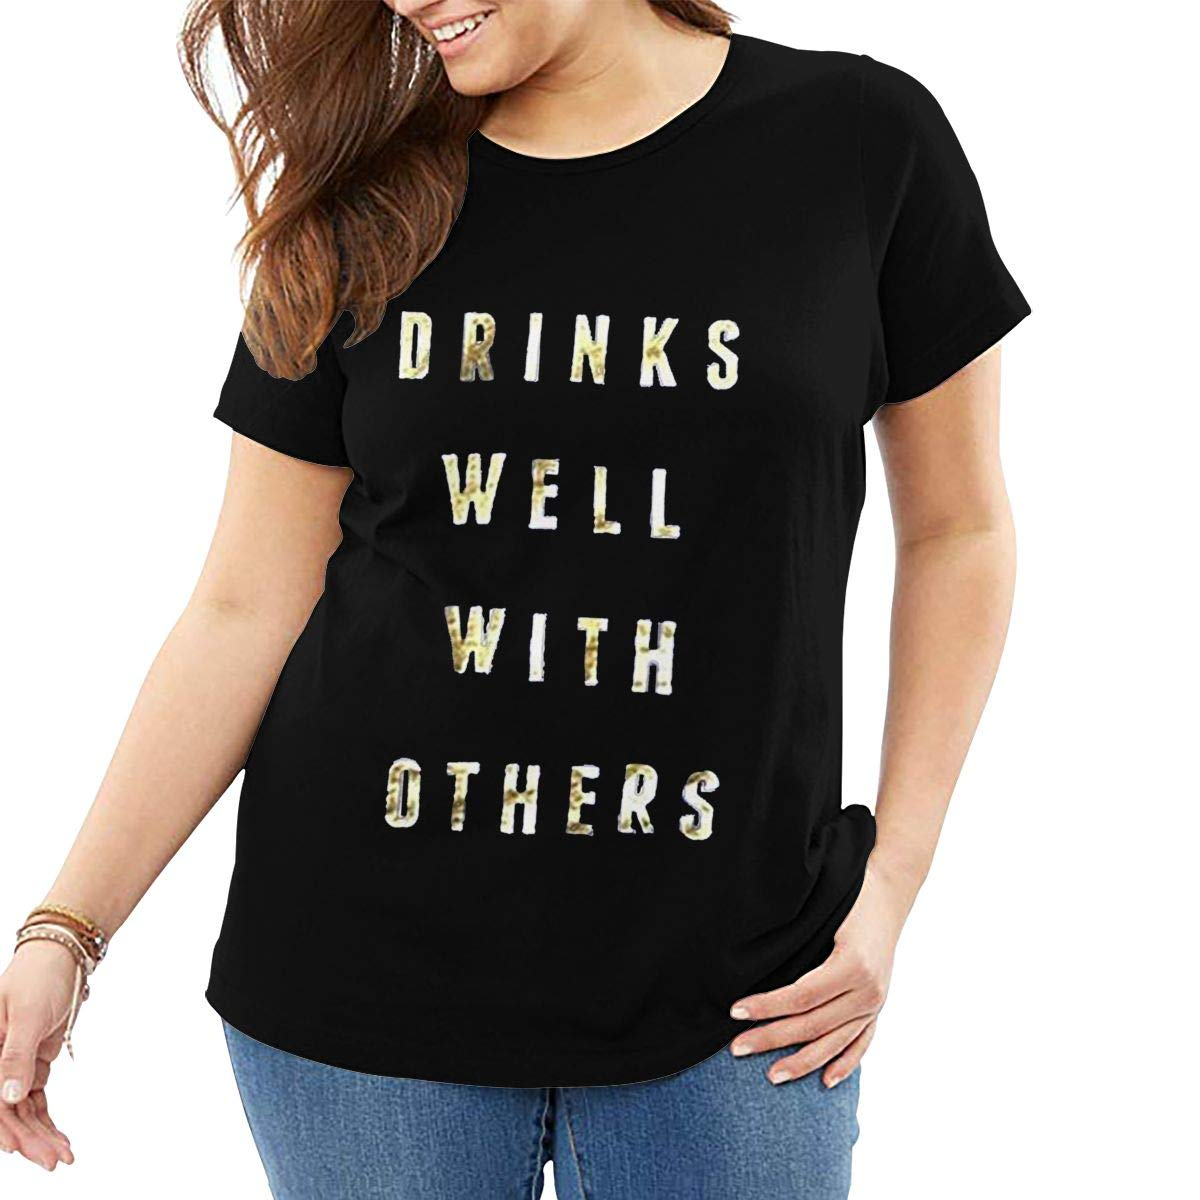 Fat Women's T Shirt Drinks Well with Others Tee Shirts T-Shirt Short-Sleeve Round Neck Tshirt for Women Youth Girls Black 5XL by BKashy